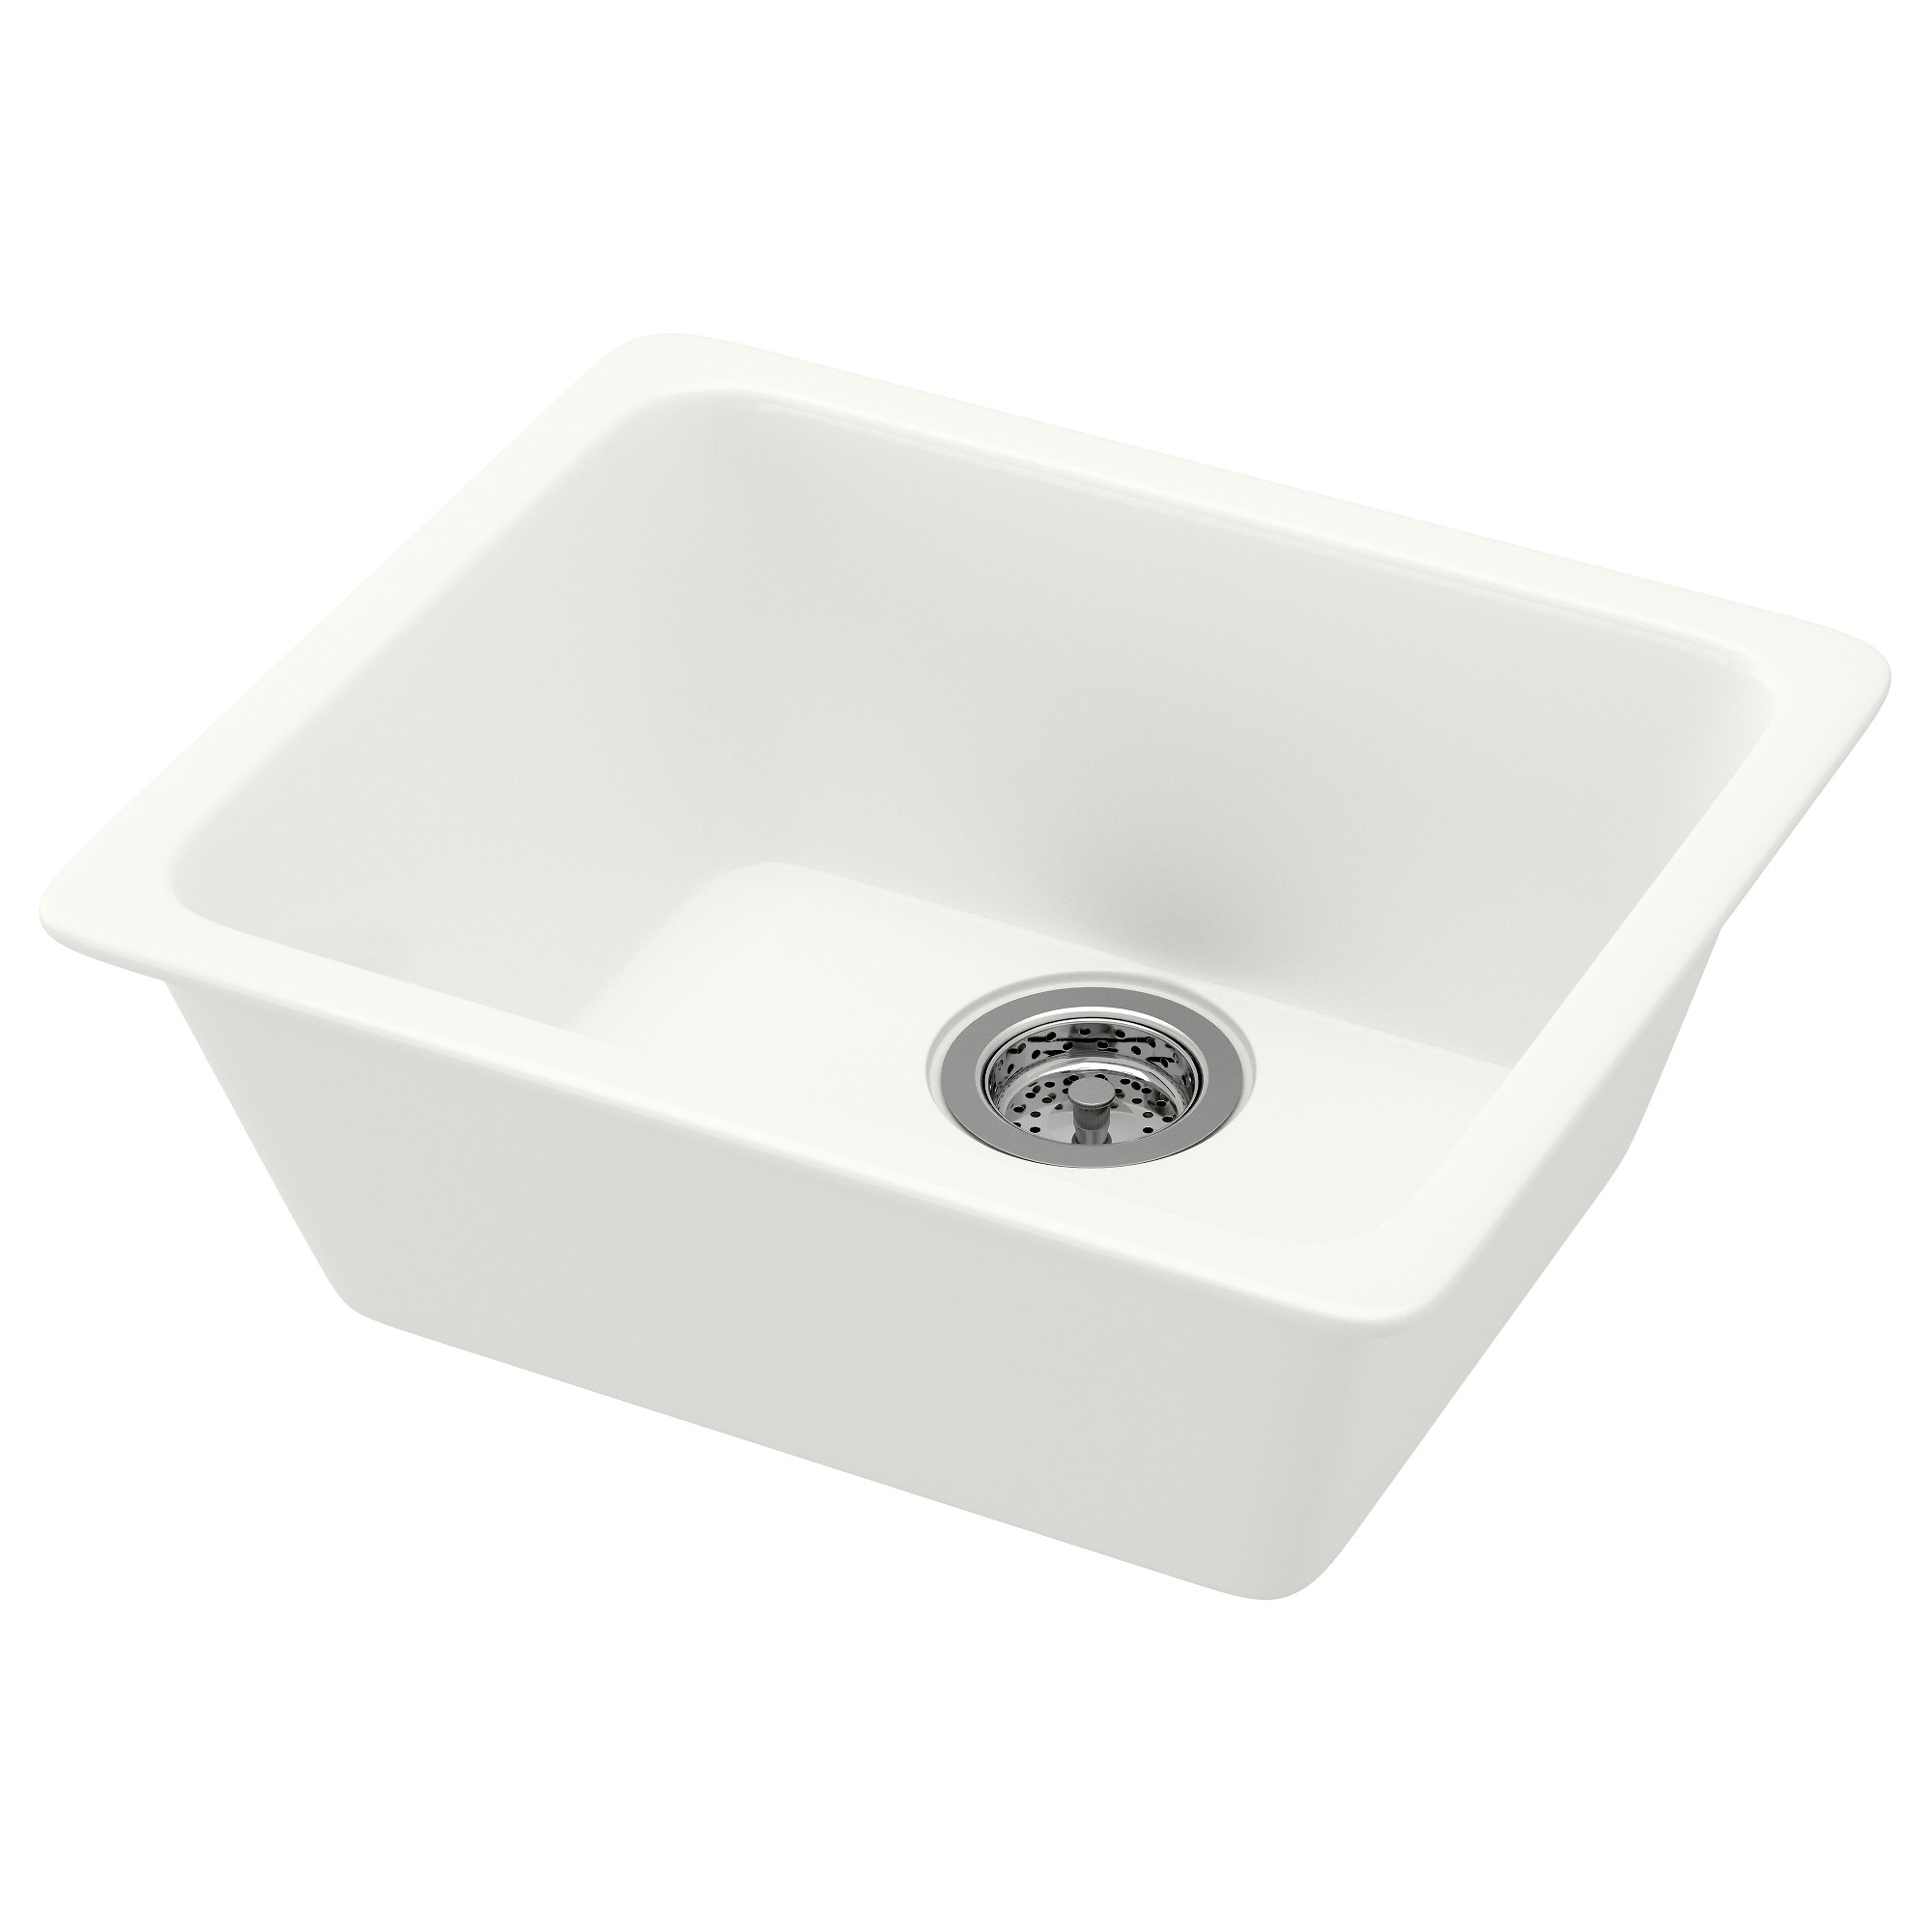 domsj sink white width 20 78 depth 17 3 - Kitchen Sinks Cheap Prices